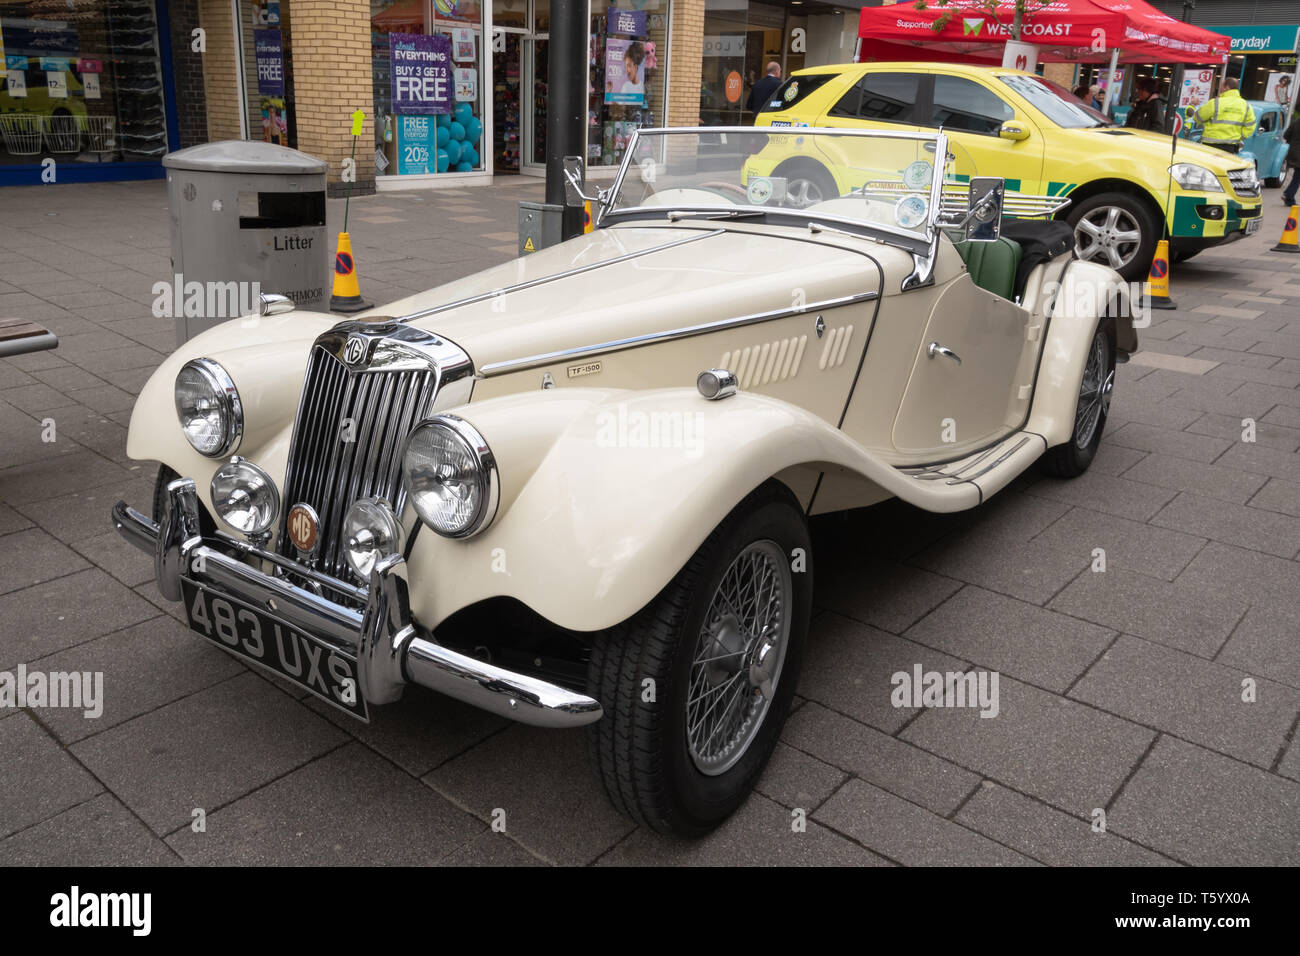 White MG TF-1500 vintage car (1955) on display in a UK Classic Motor Vehicle Show - Stock Image